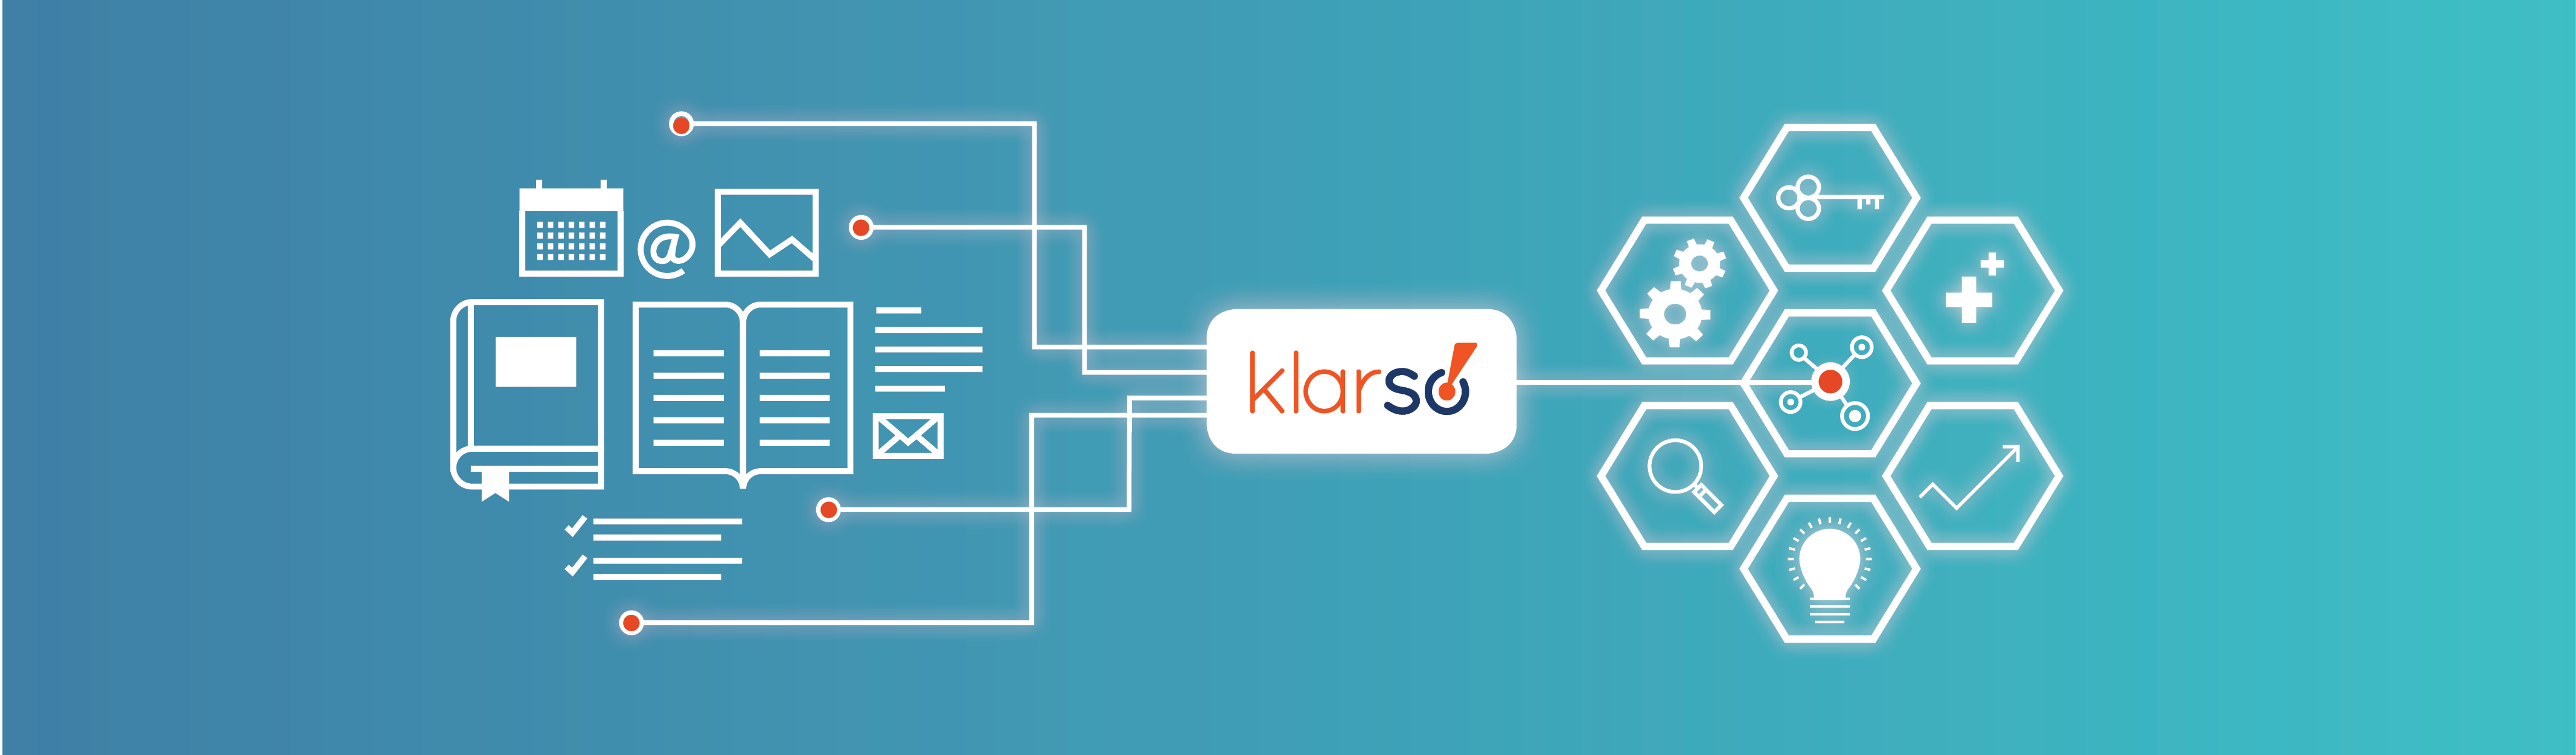 Klarso Content Authoring System